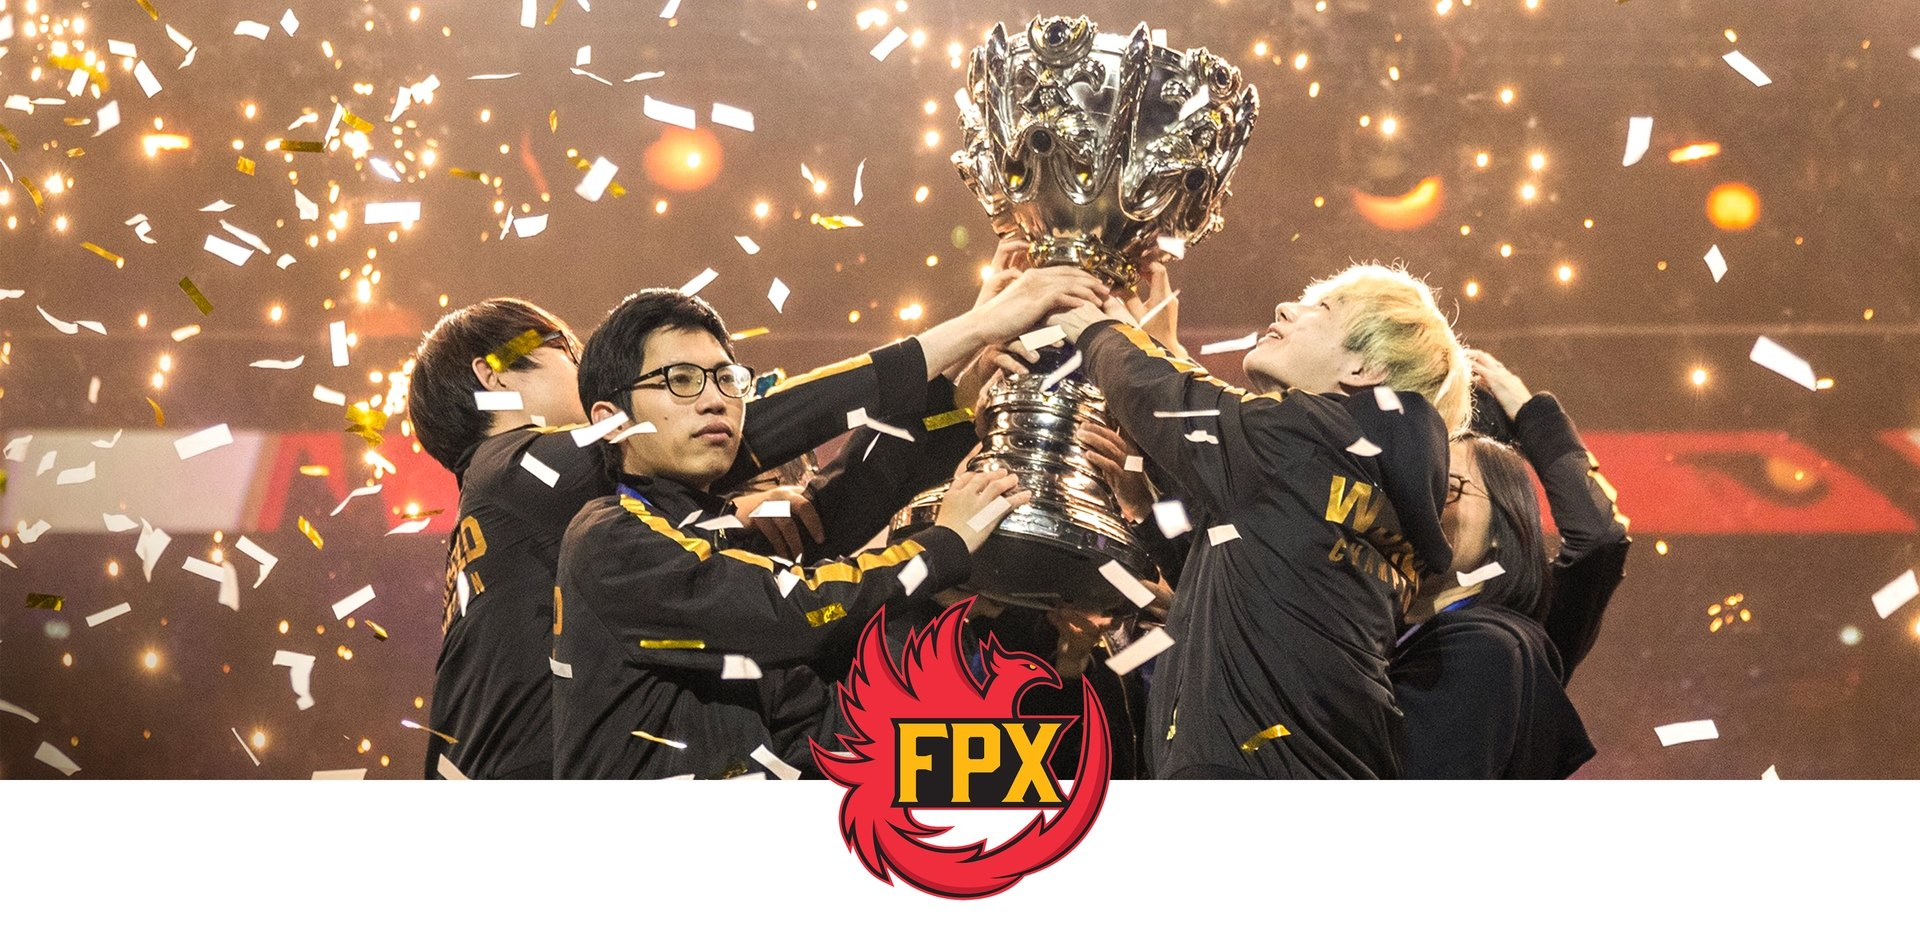 Team FPF logo with them winning a trophy and holding it together